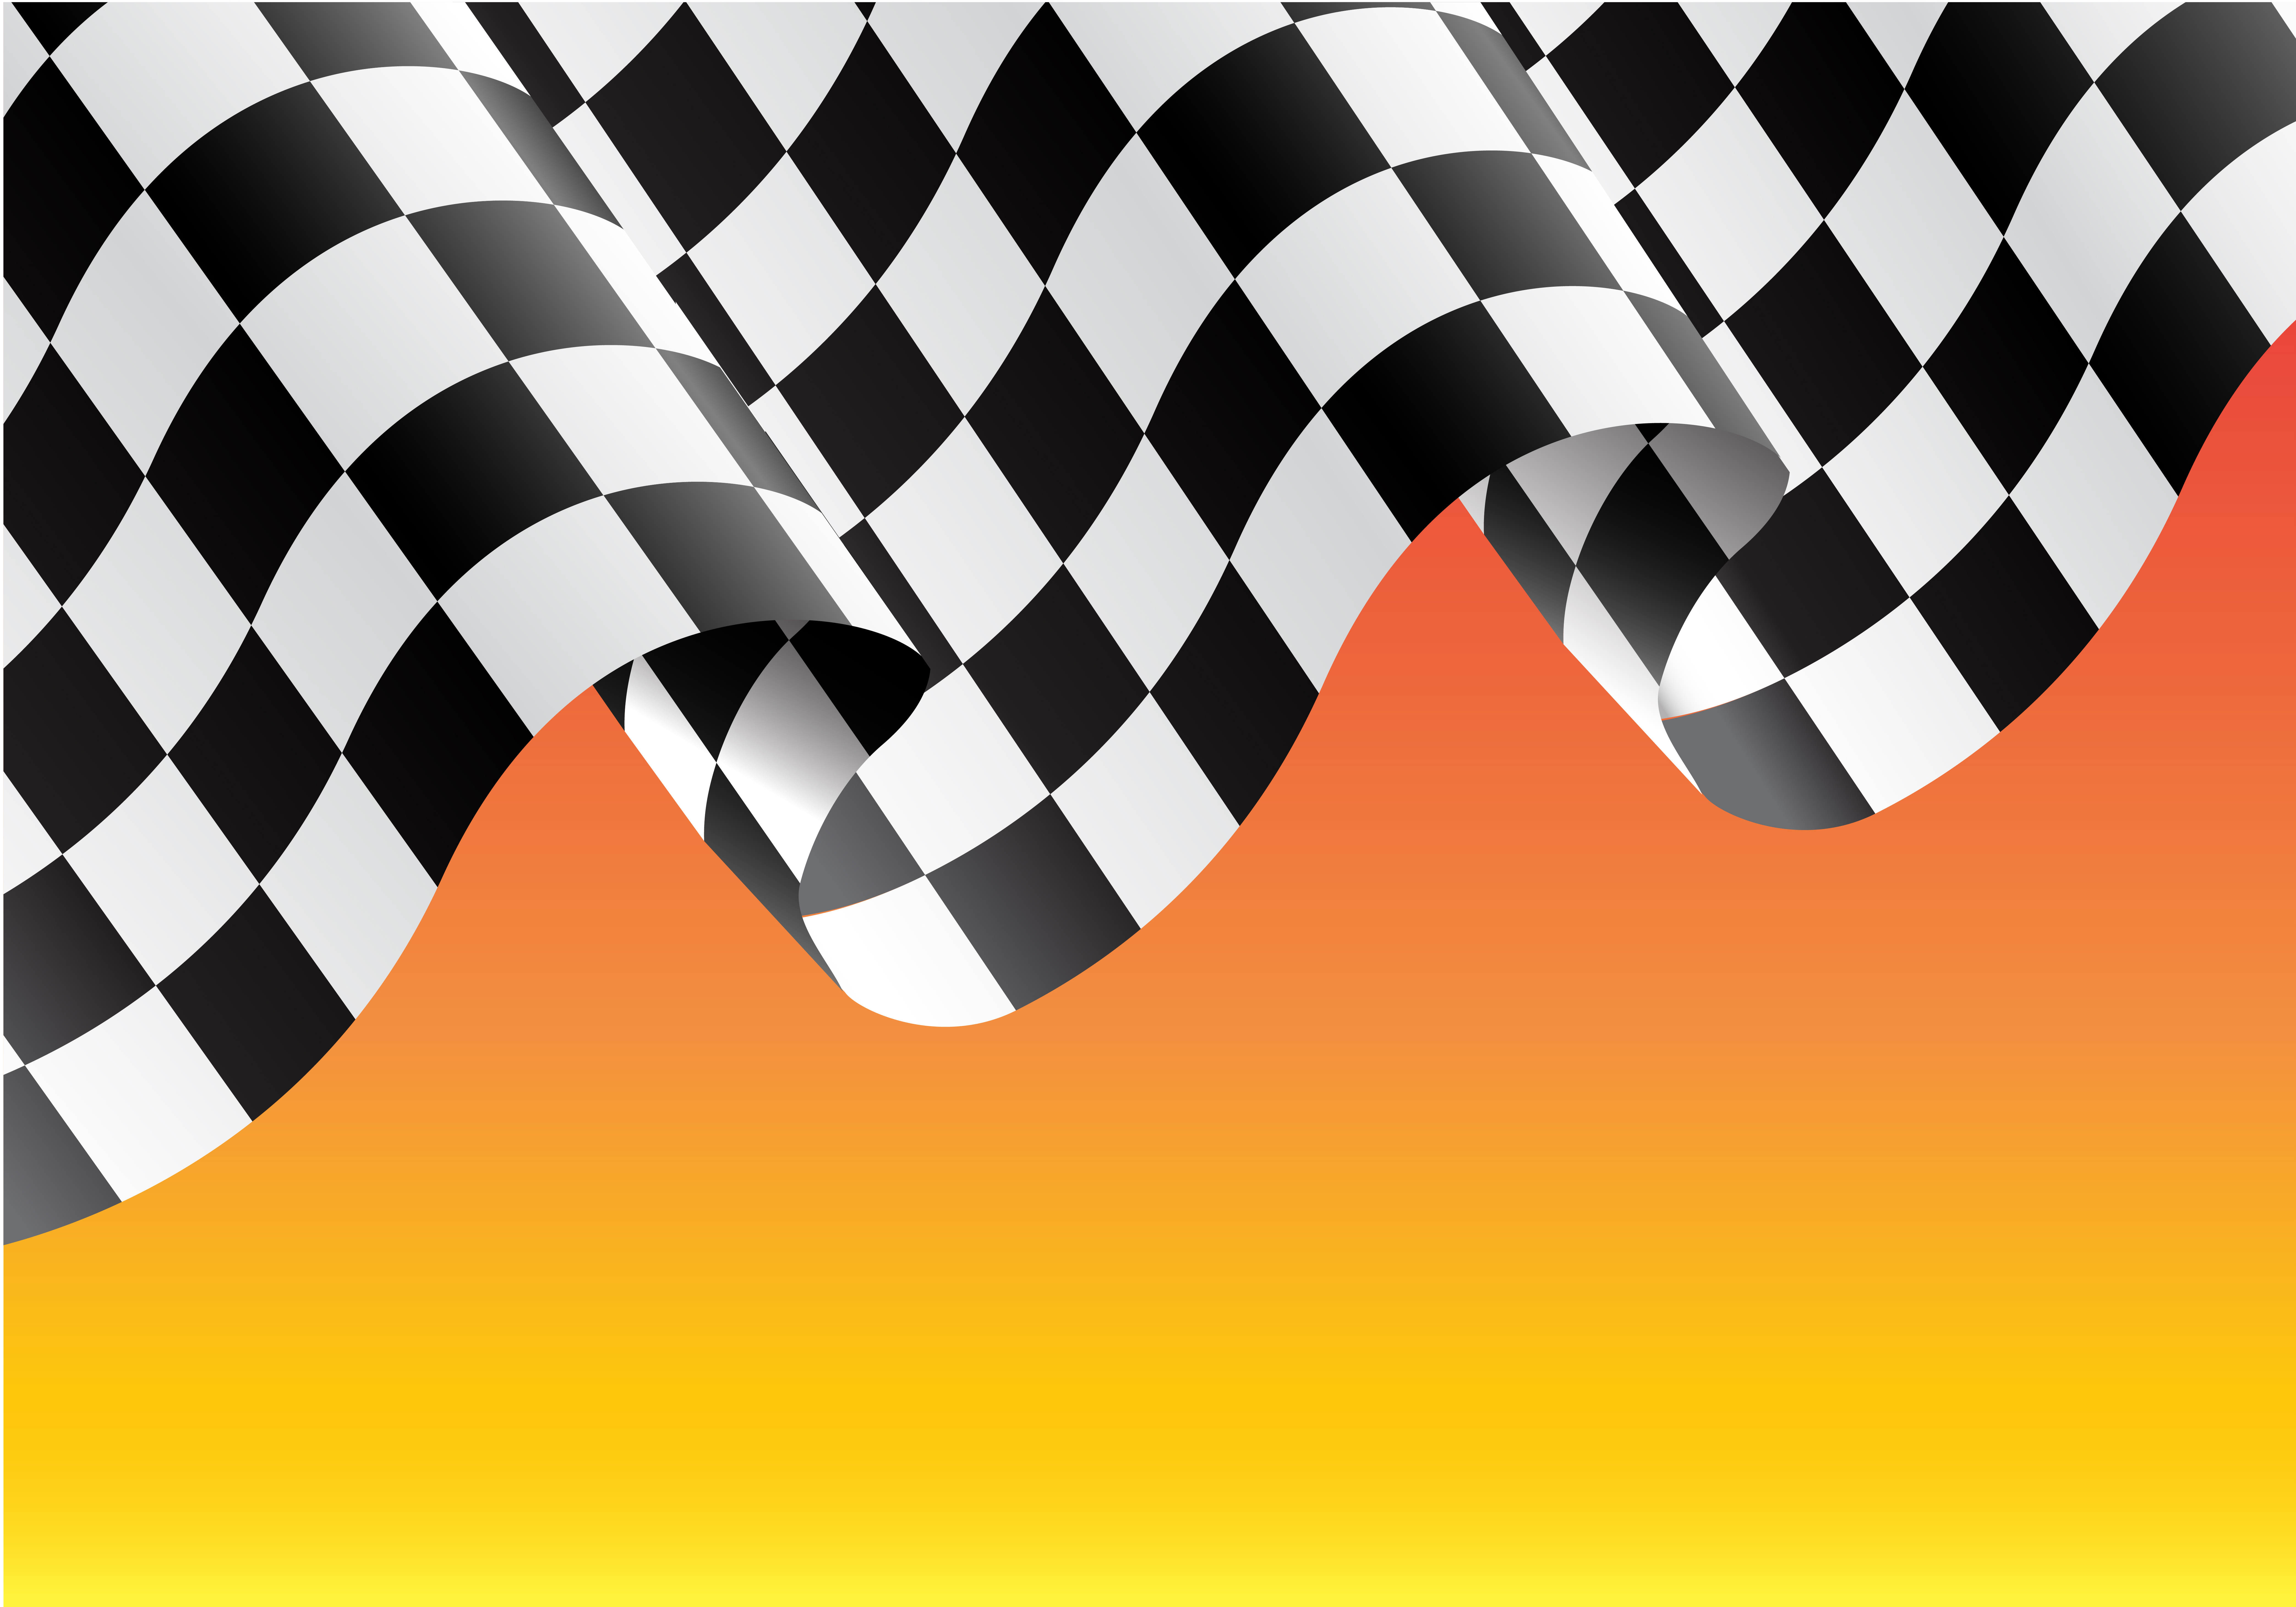 wavy checkered flag images ppt background #4864